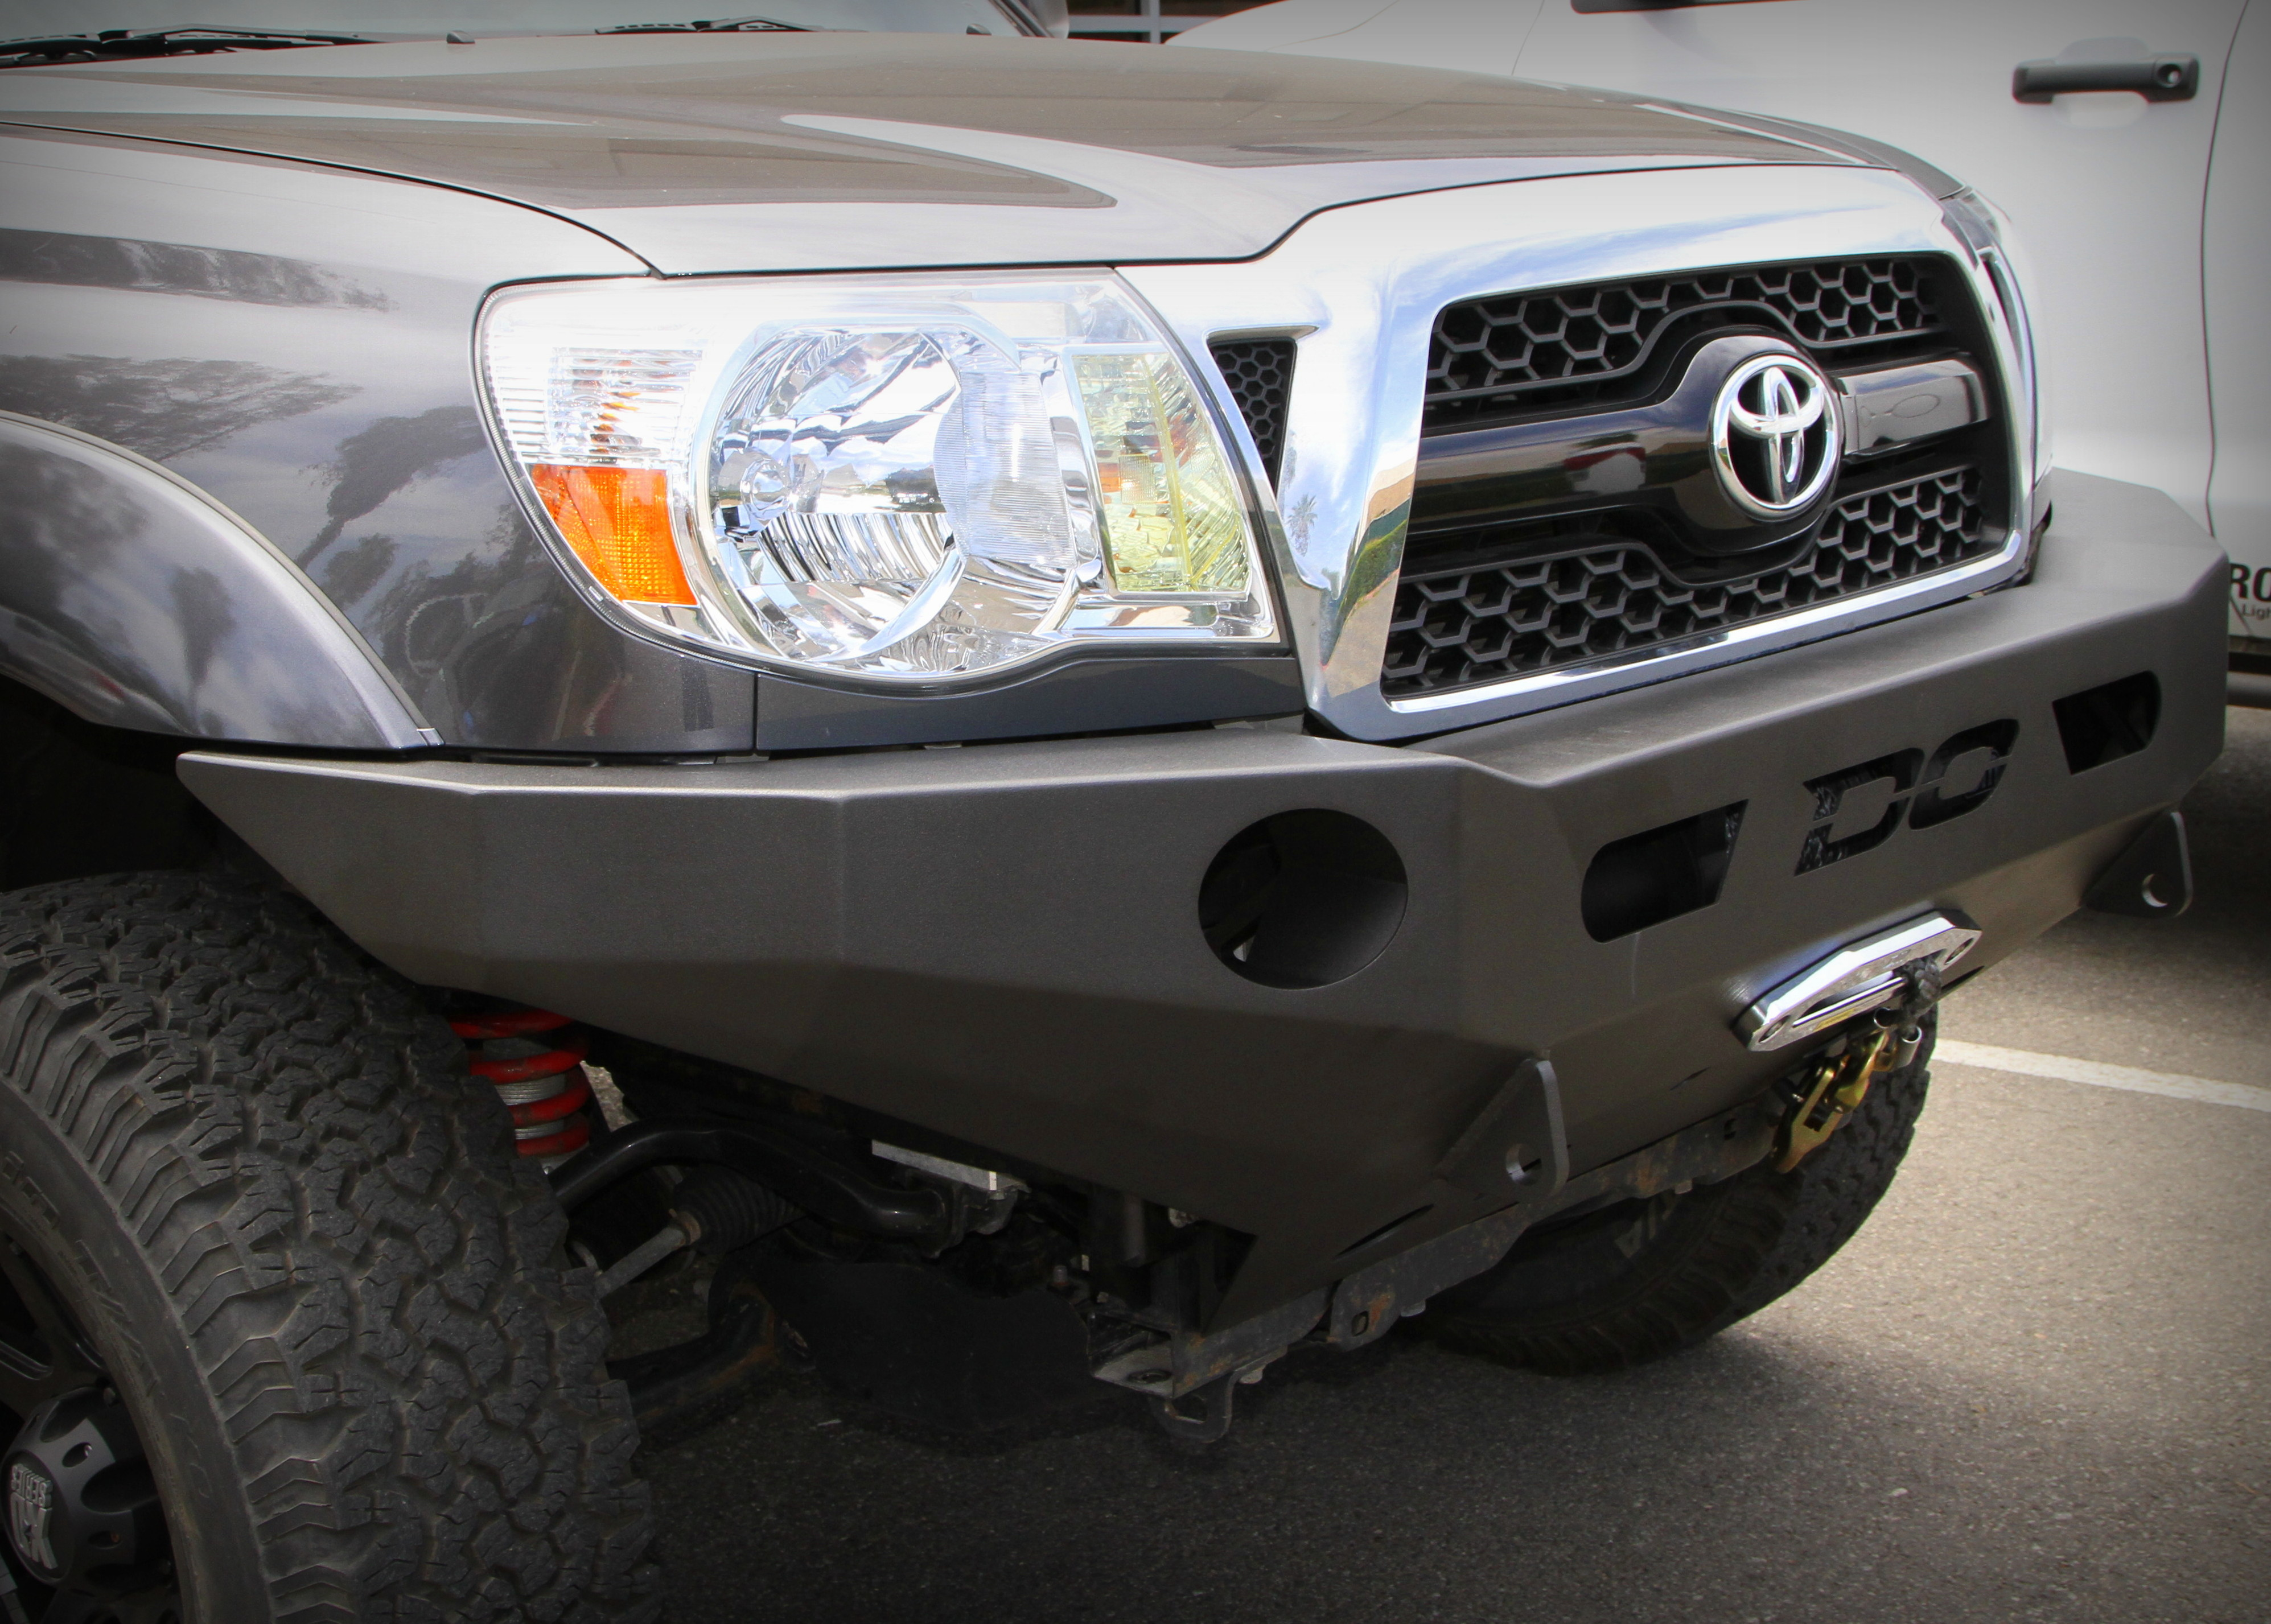 DEMELLO OFF-ROAD TACOMA FLAT TOP FRONT BUMPER with Powder Coat 12-15